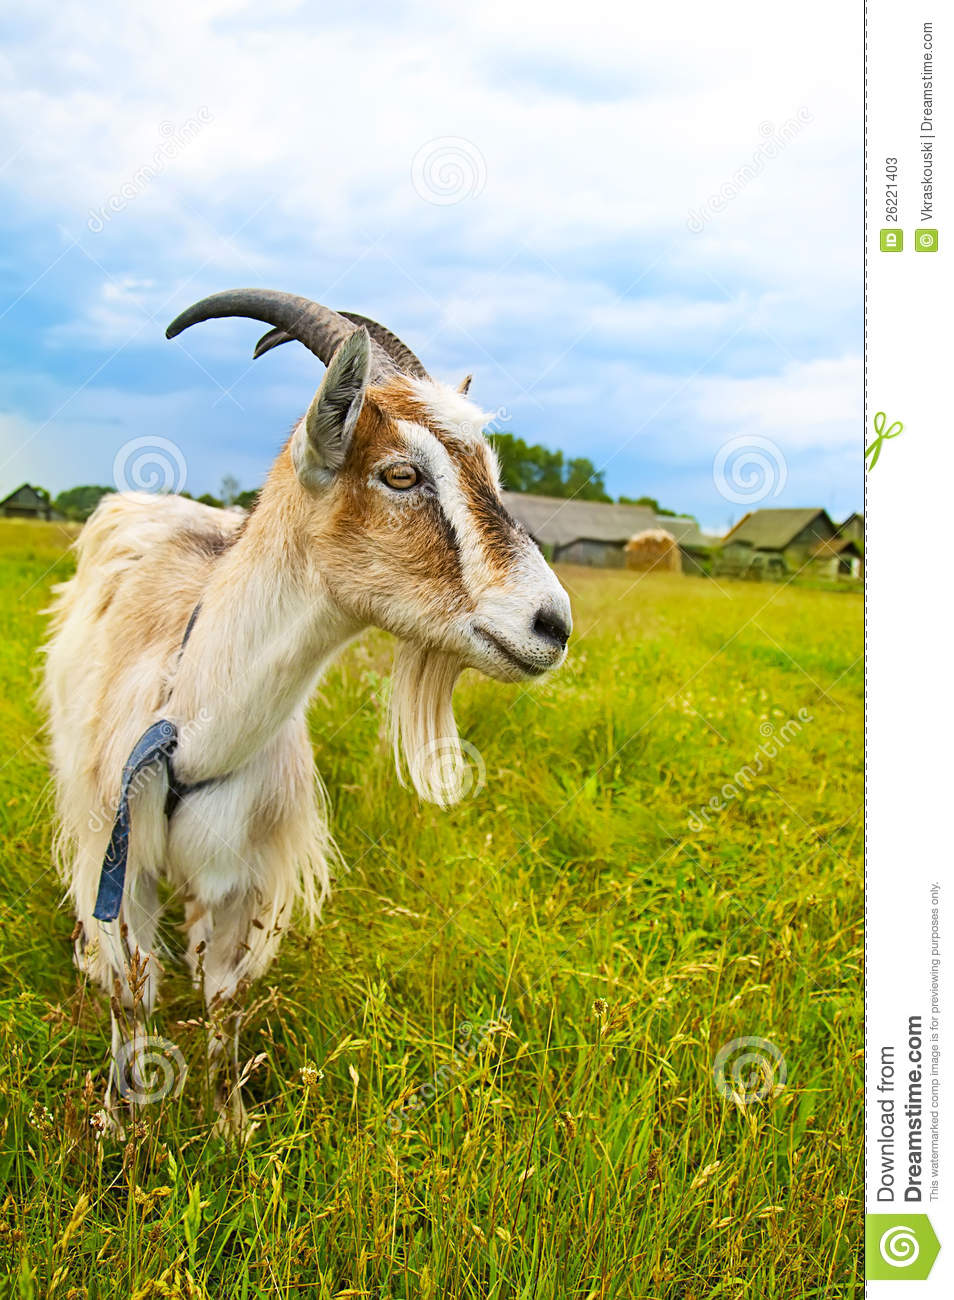 Brown And White Goat In Th Field Stock Image Image 26221403